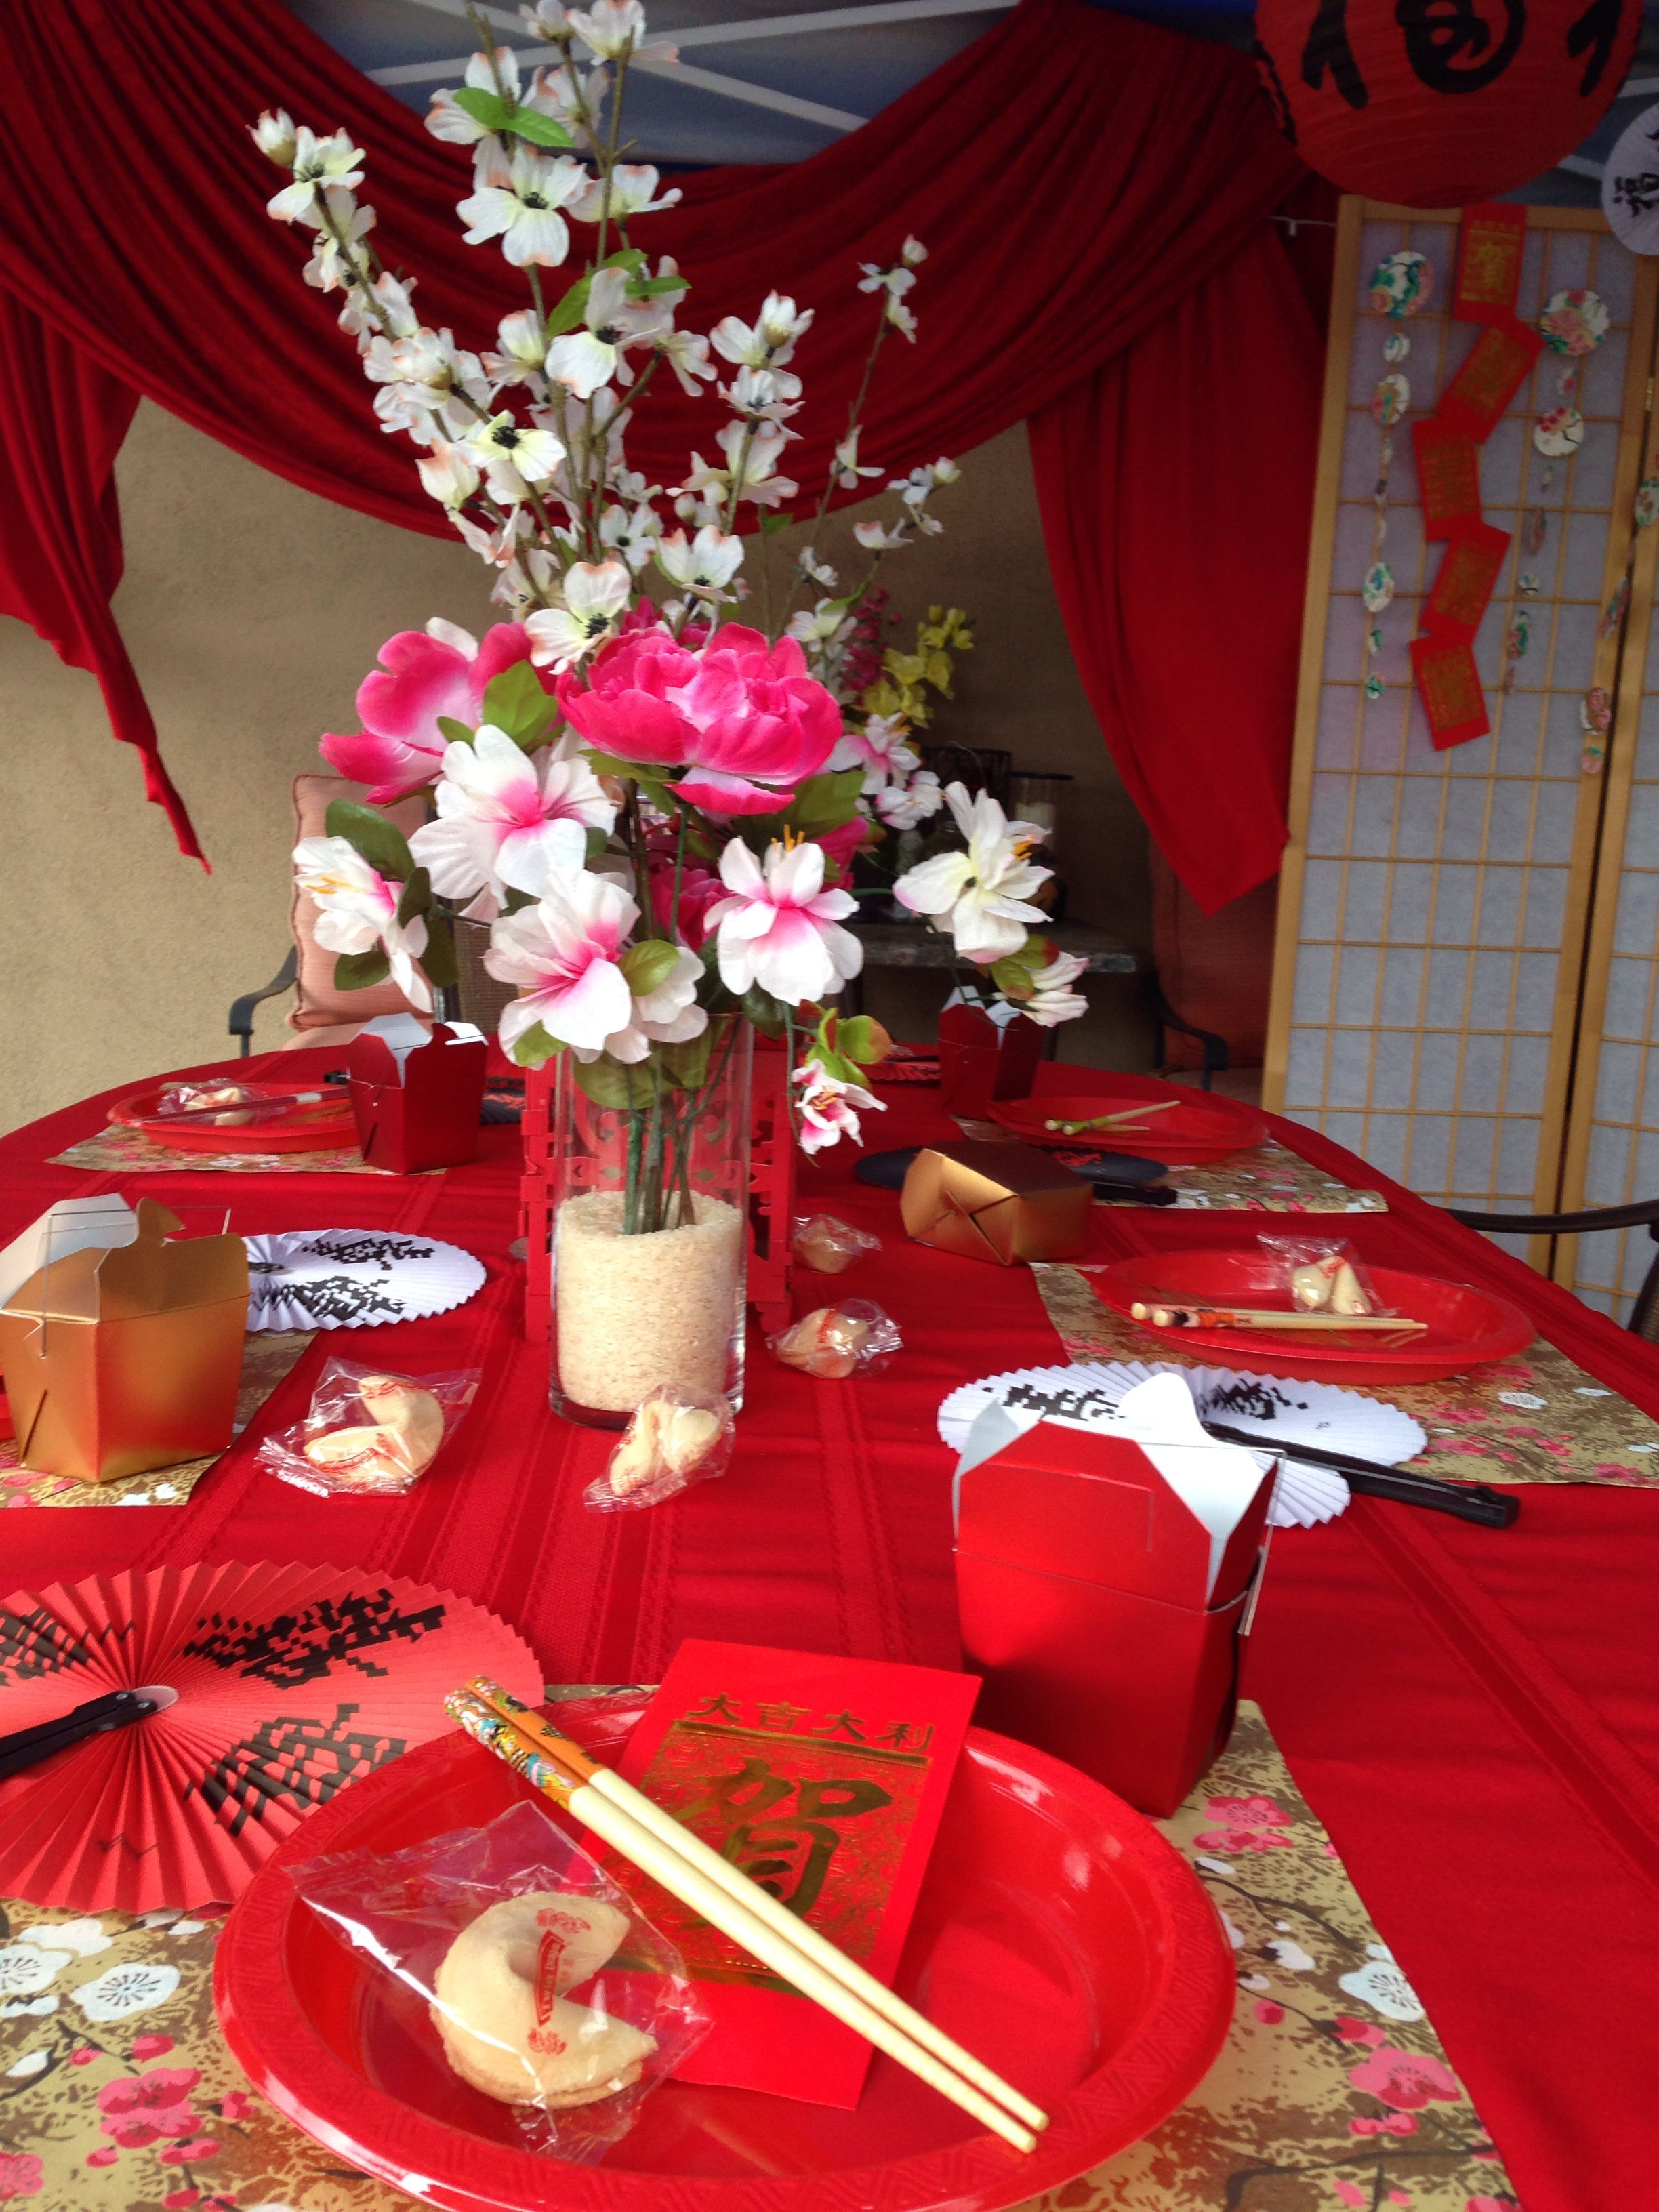 chinese new year photobooth chinese new year party decorations chinesenewyear diy partydecorations